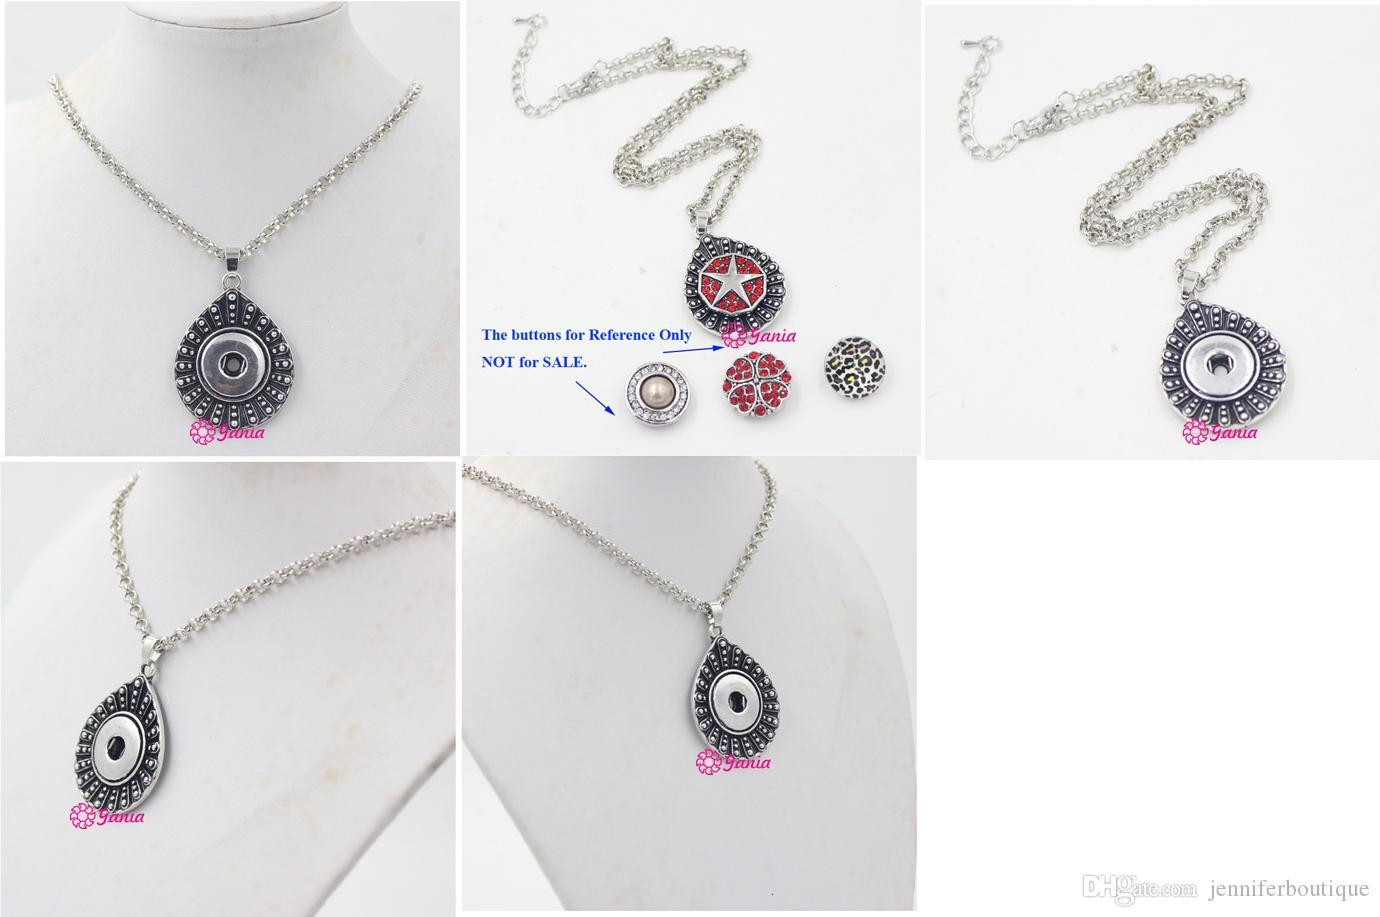 New Arrival Wholesale DIY Snap Jewelry 18mm Snap Water Drop Pendant Necklace Snaps Necklace for 18mm Snaps Jewelry